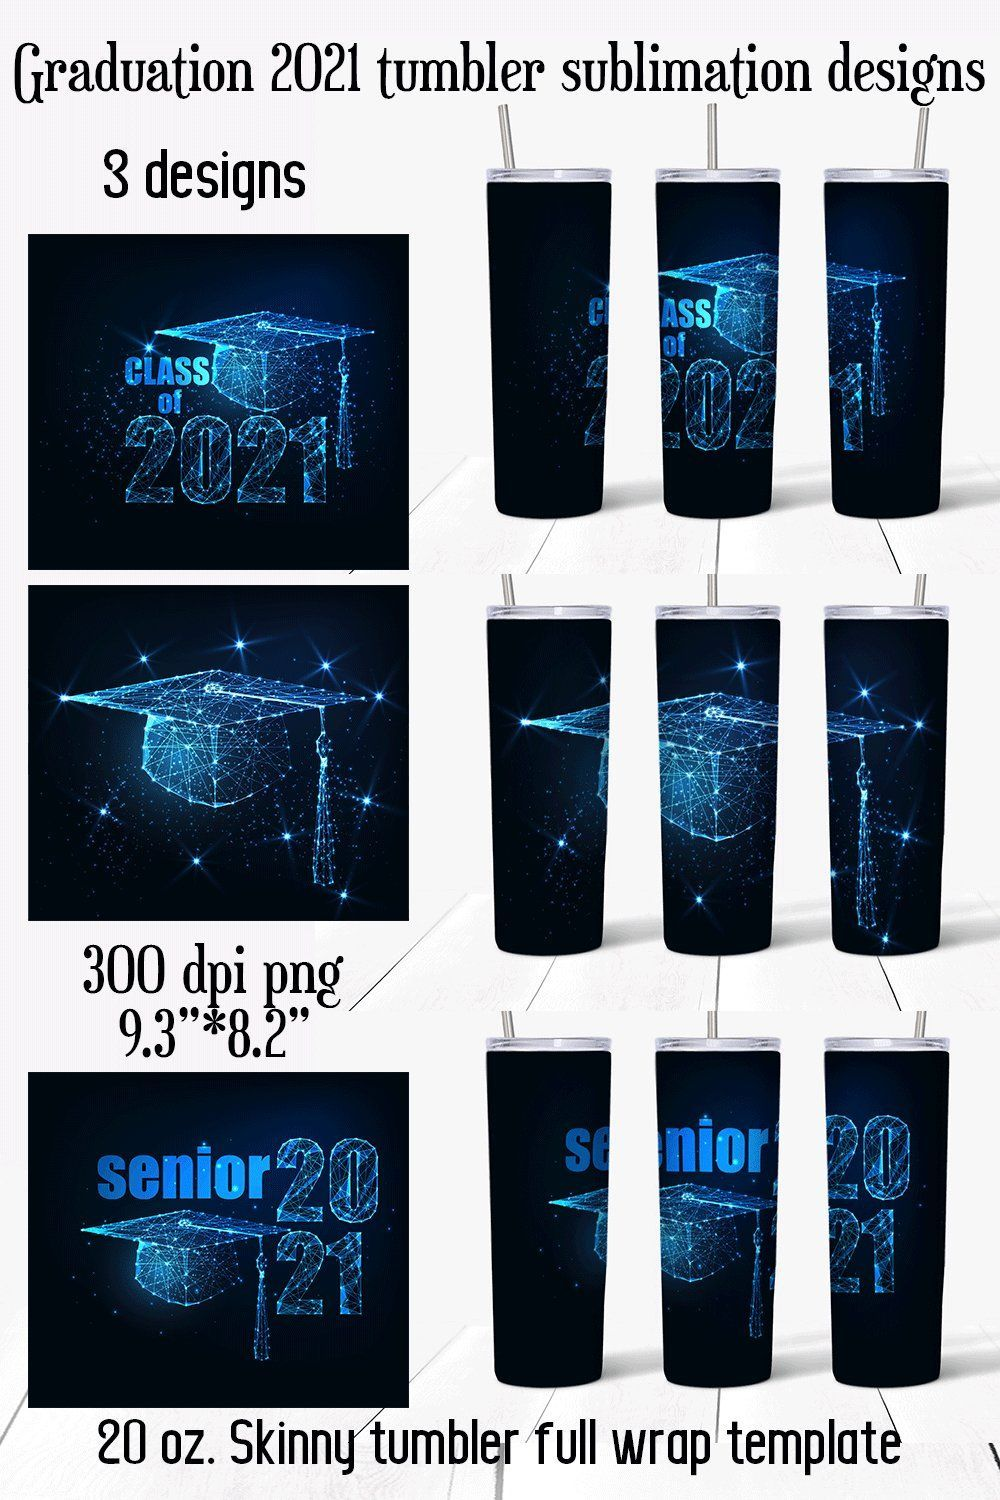 Instant Download 20 oz Skinny Tapered /& Str8 Sublimation Tumbler Design PNG File 2021 TUMBLER DRIVE Ready to Print